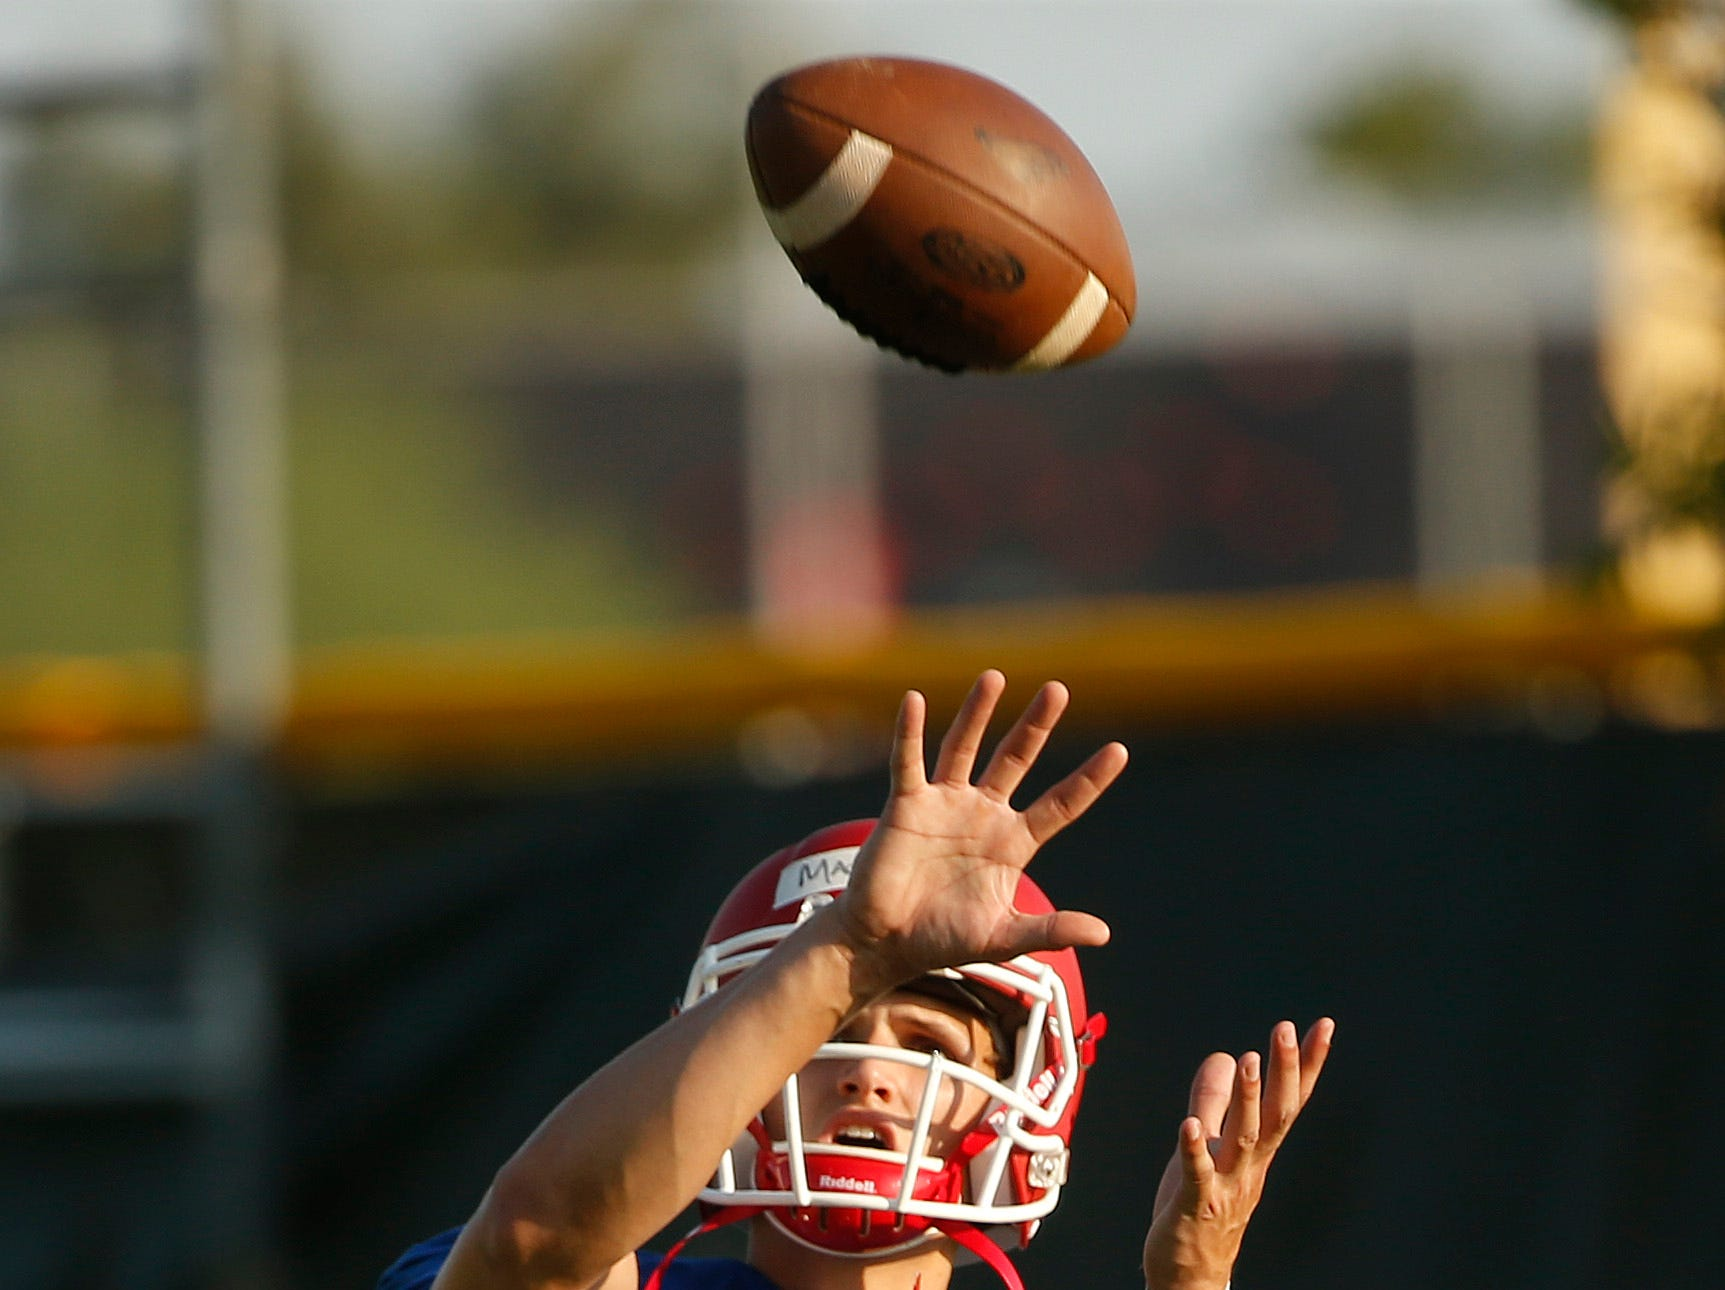 Player Thomas MacVittie catches a throw back to him during practice at Mesa Community College in Mesa, Ariz. on Aug. 16, 2018.